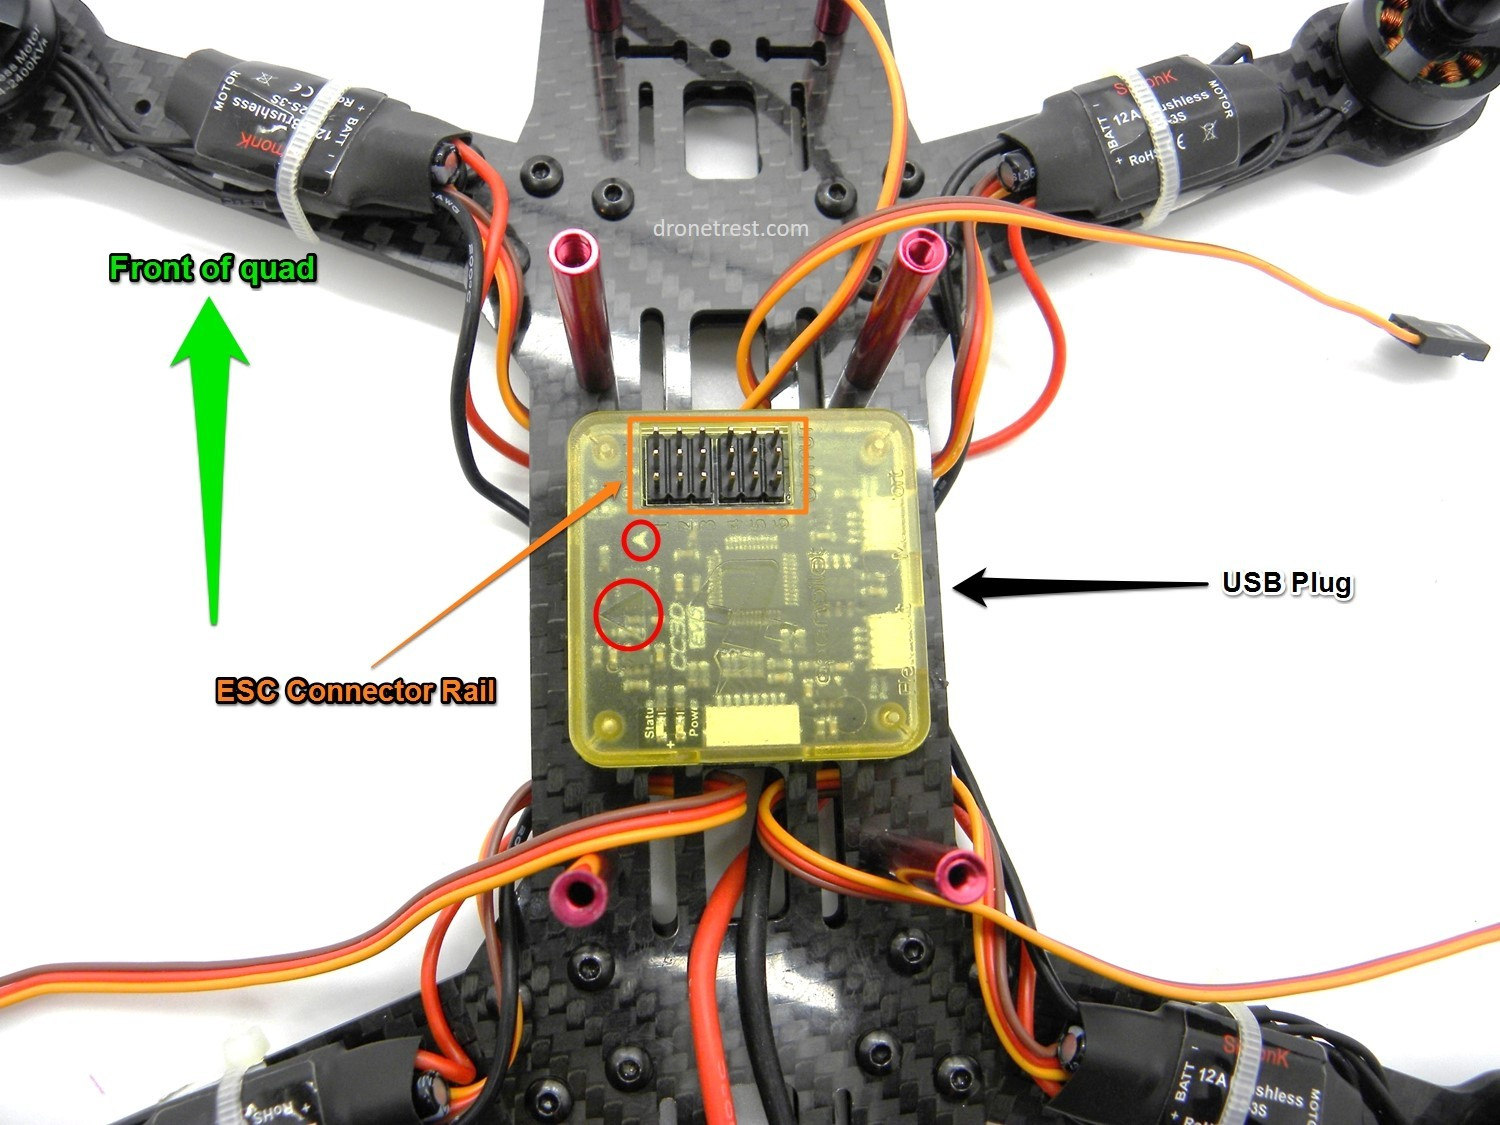 Cc3D Wiring Diagram Quad Copter | Manual E-Books - Cc3D Wiring Diagram